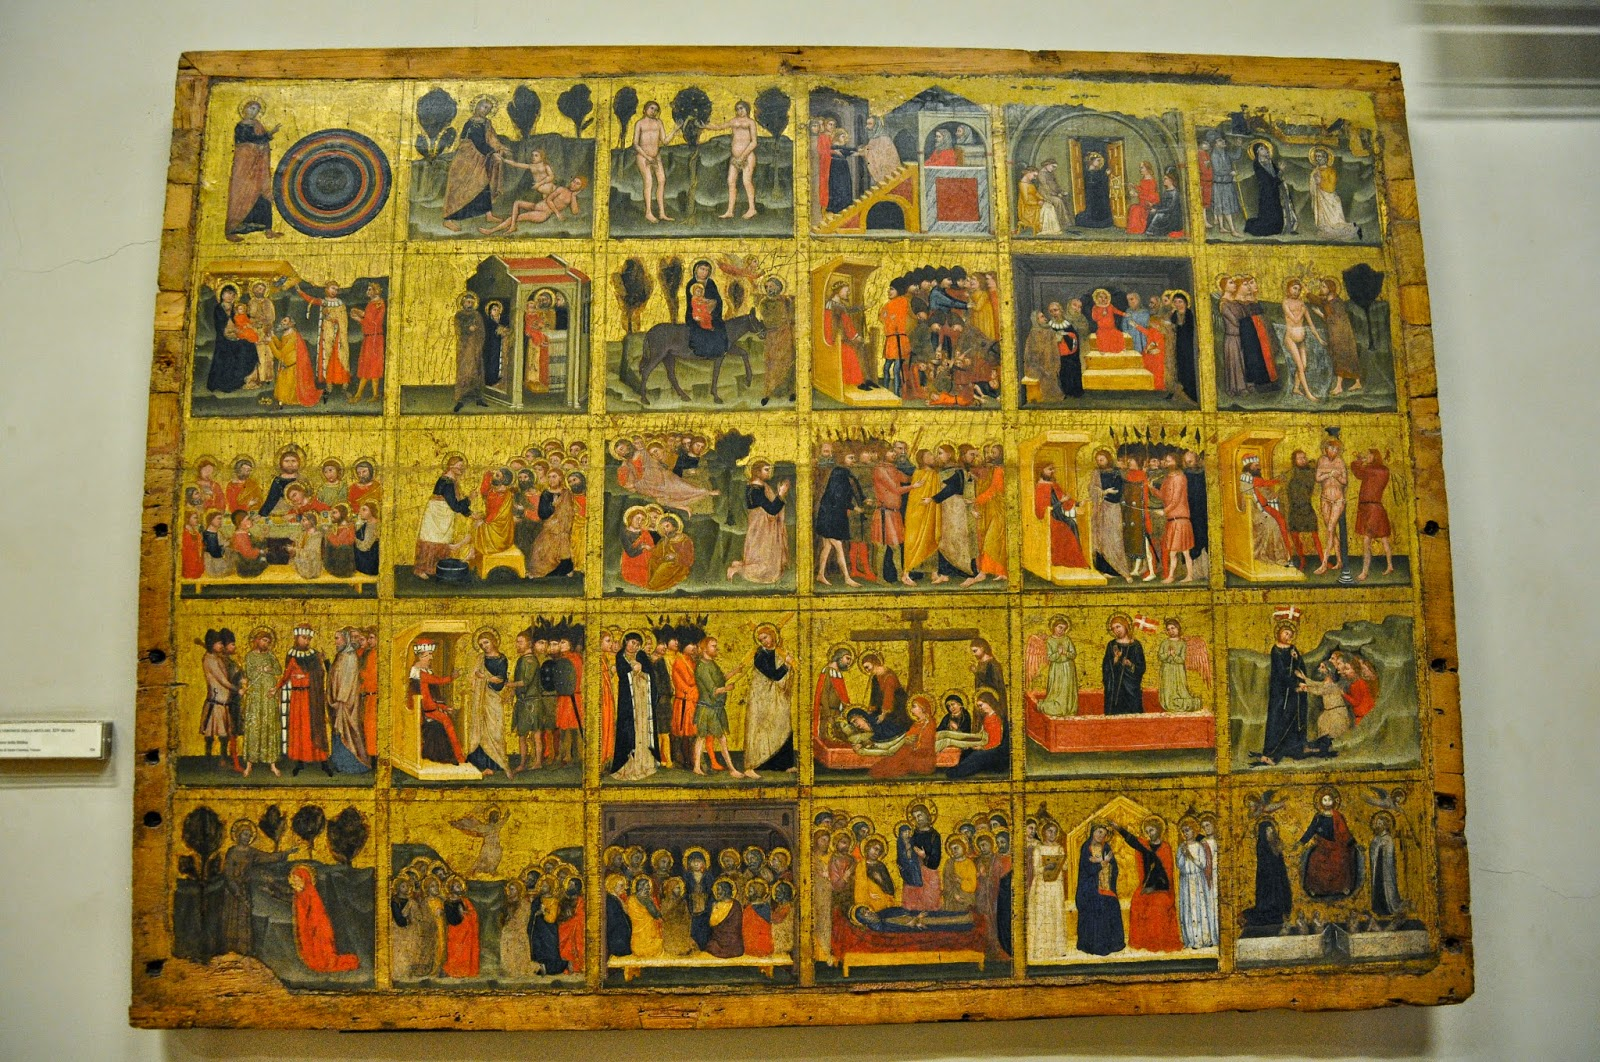 A gold leaf religious painting representing 30 biblical stories. Middle of 14th century. From the Convent of Santa Caterina in Verona. Museum of Castelvecchio, Verona.